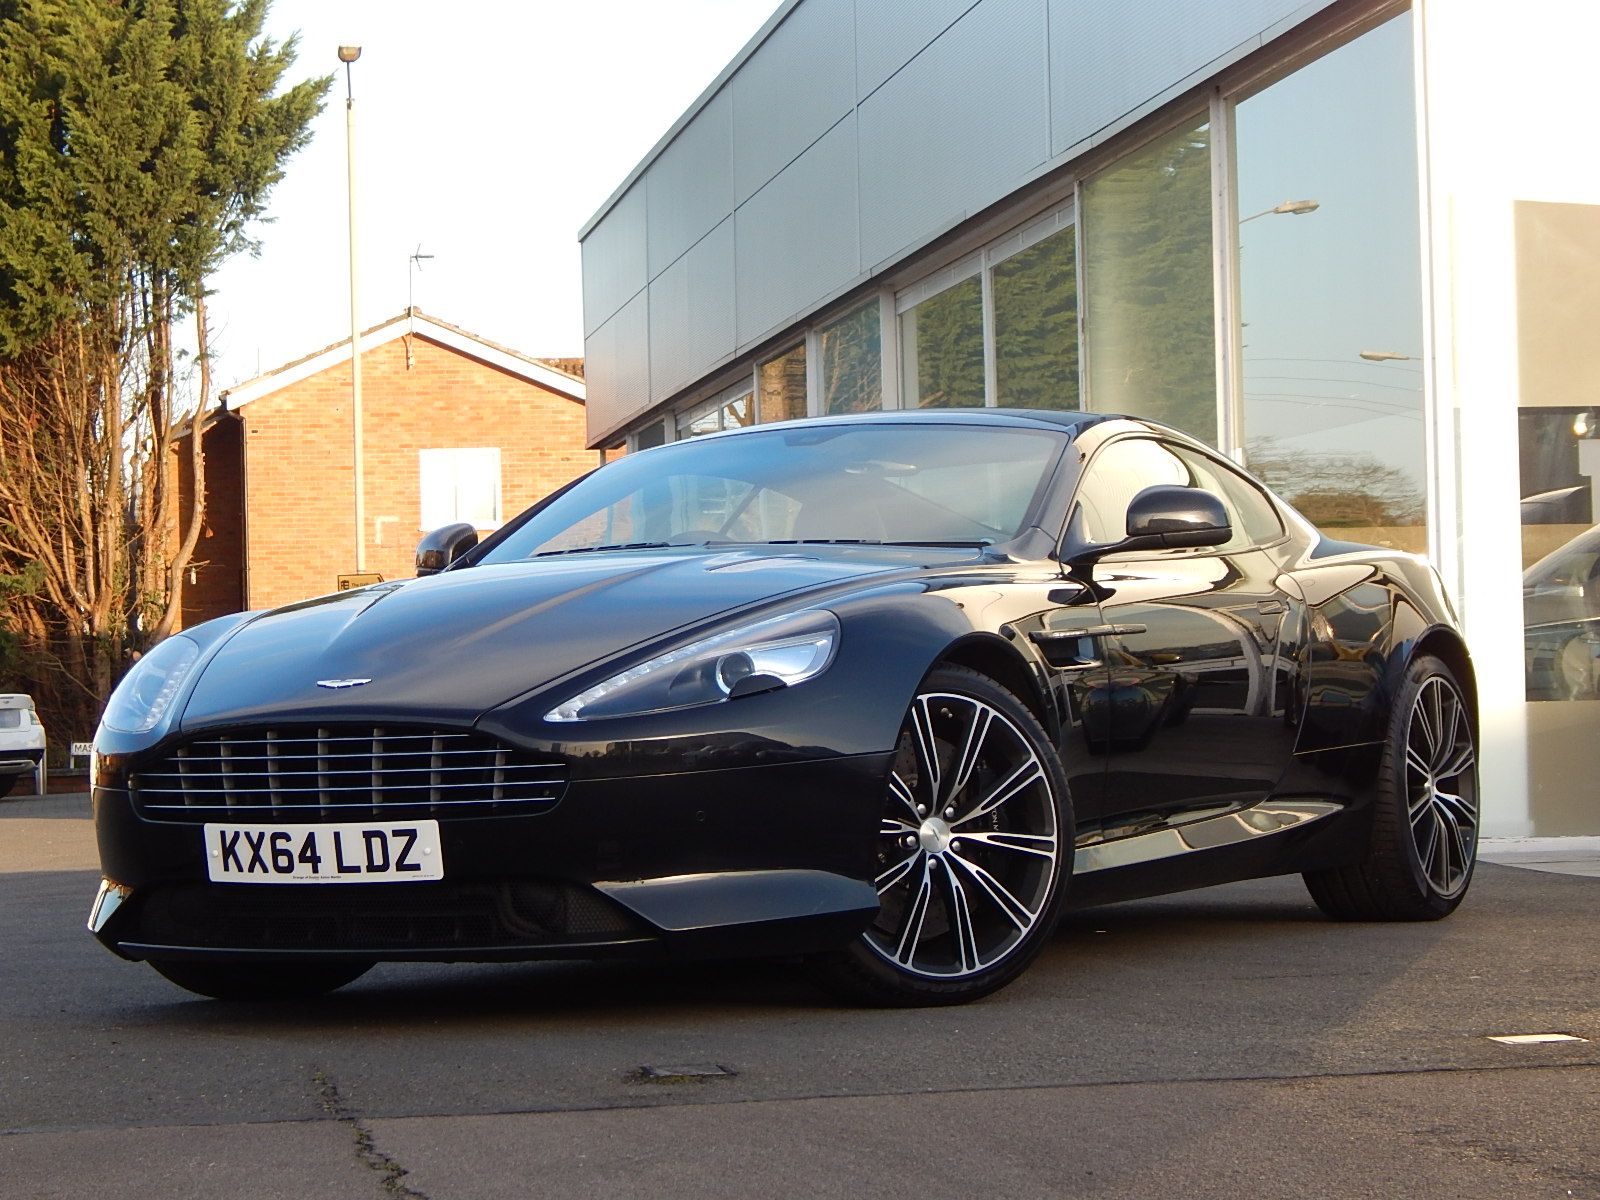 Aston Martin DB9 V12 2dr Touchtronic, Carbon Edition image 6